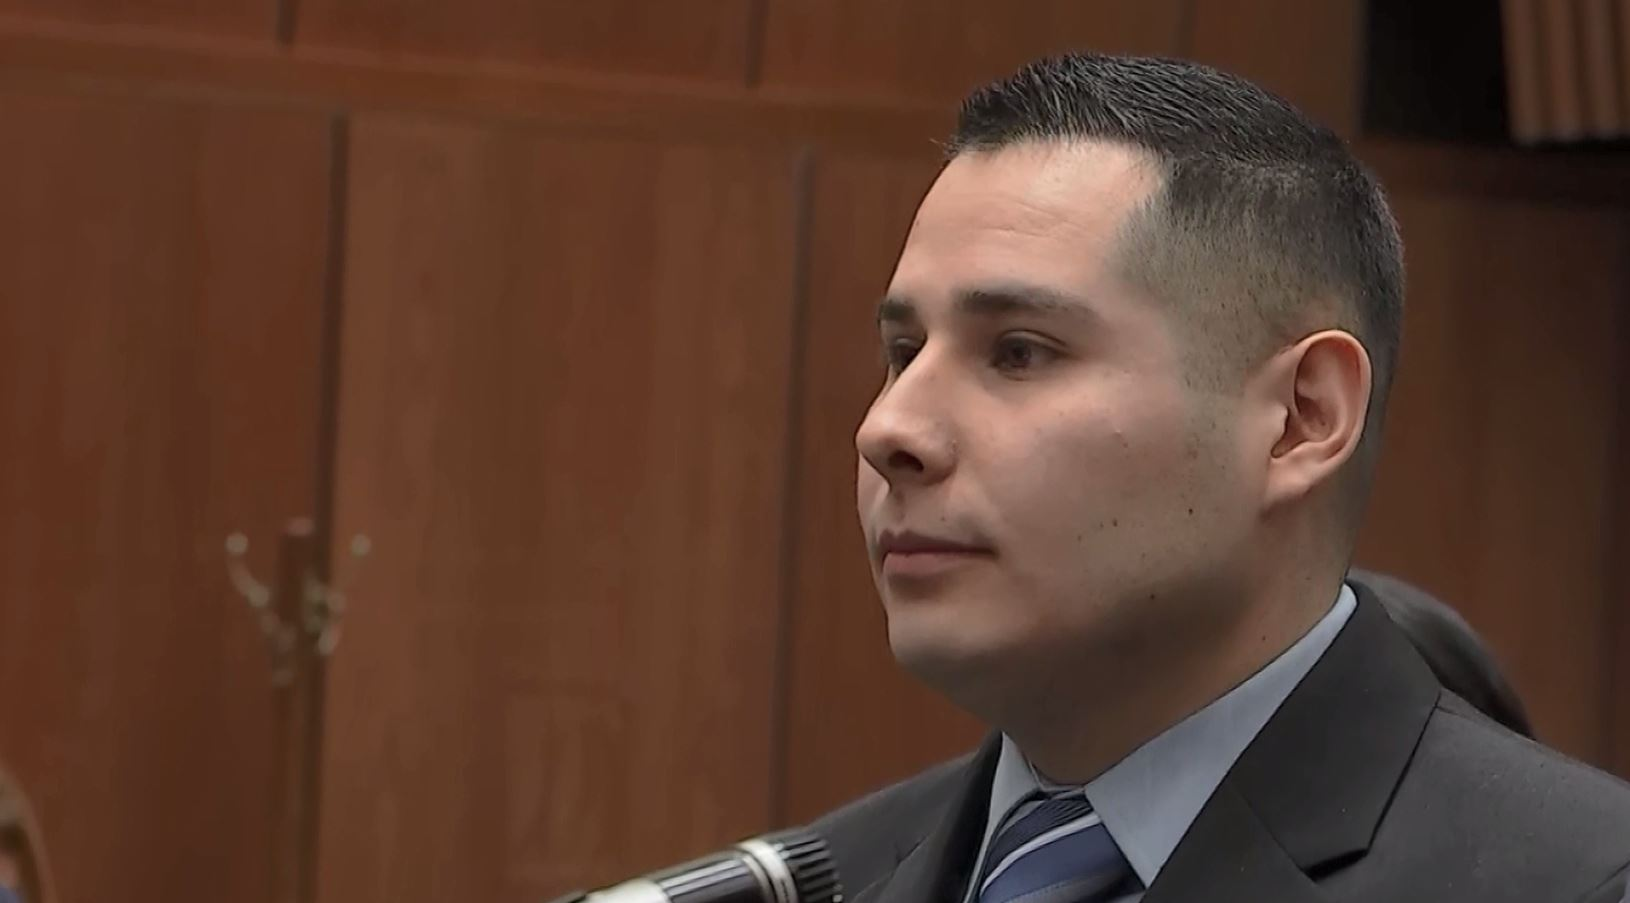 LAPD Officer Ordered to Stand Trial for Touching Dead Woman's Breast